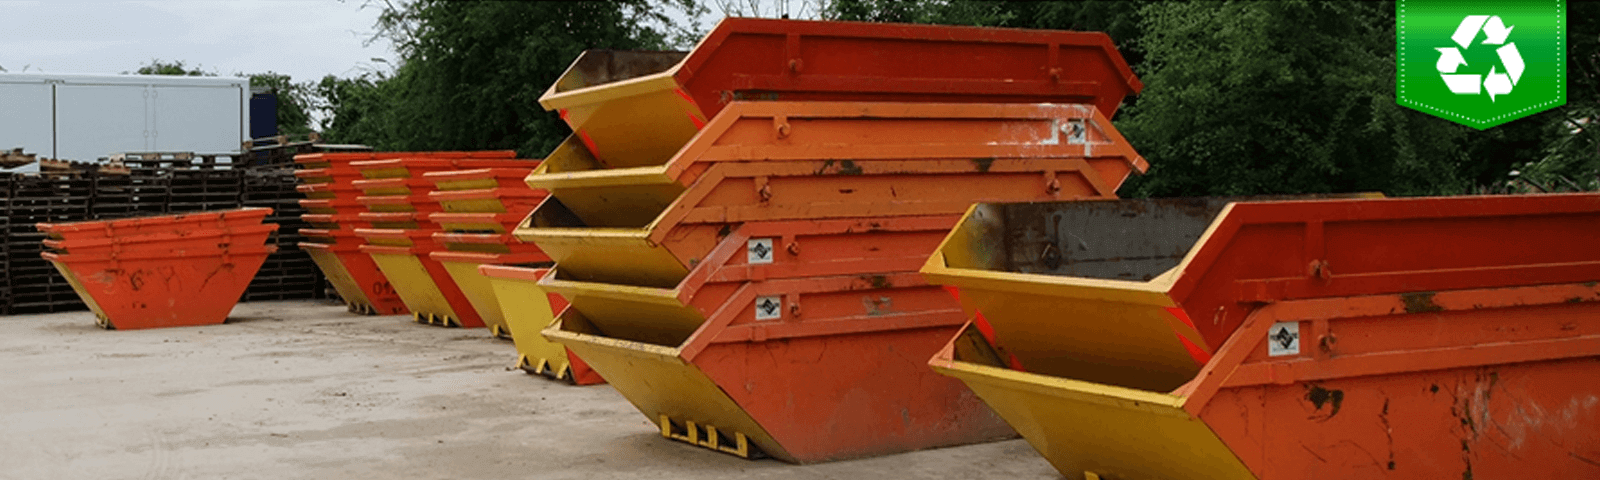 skip-hire-redditch-stacked-up-